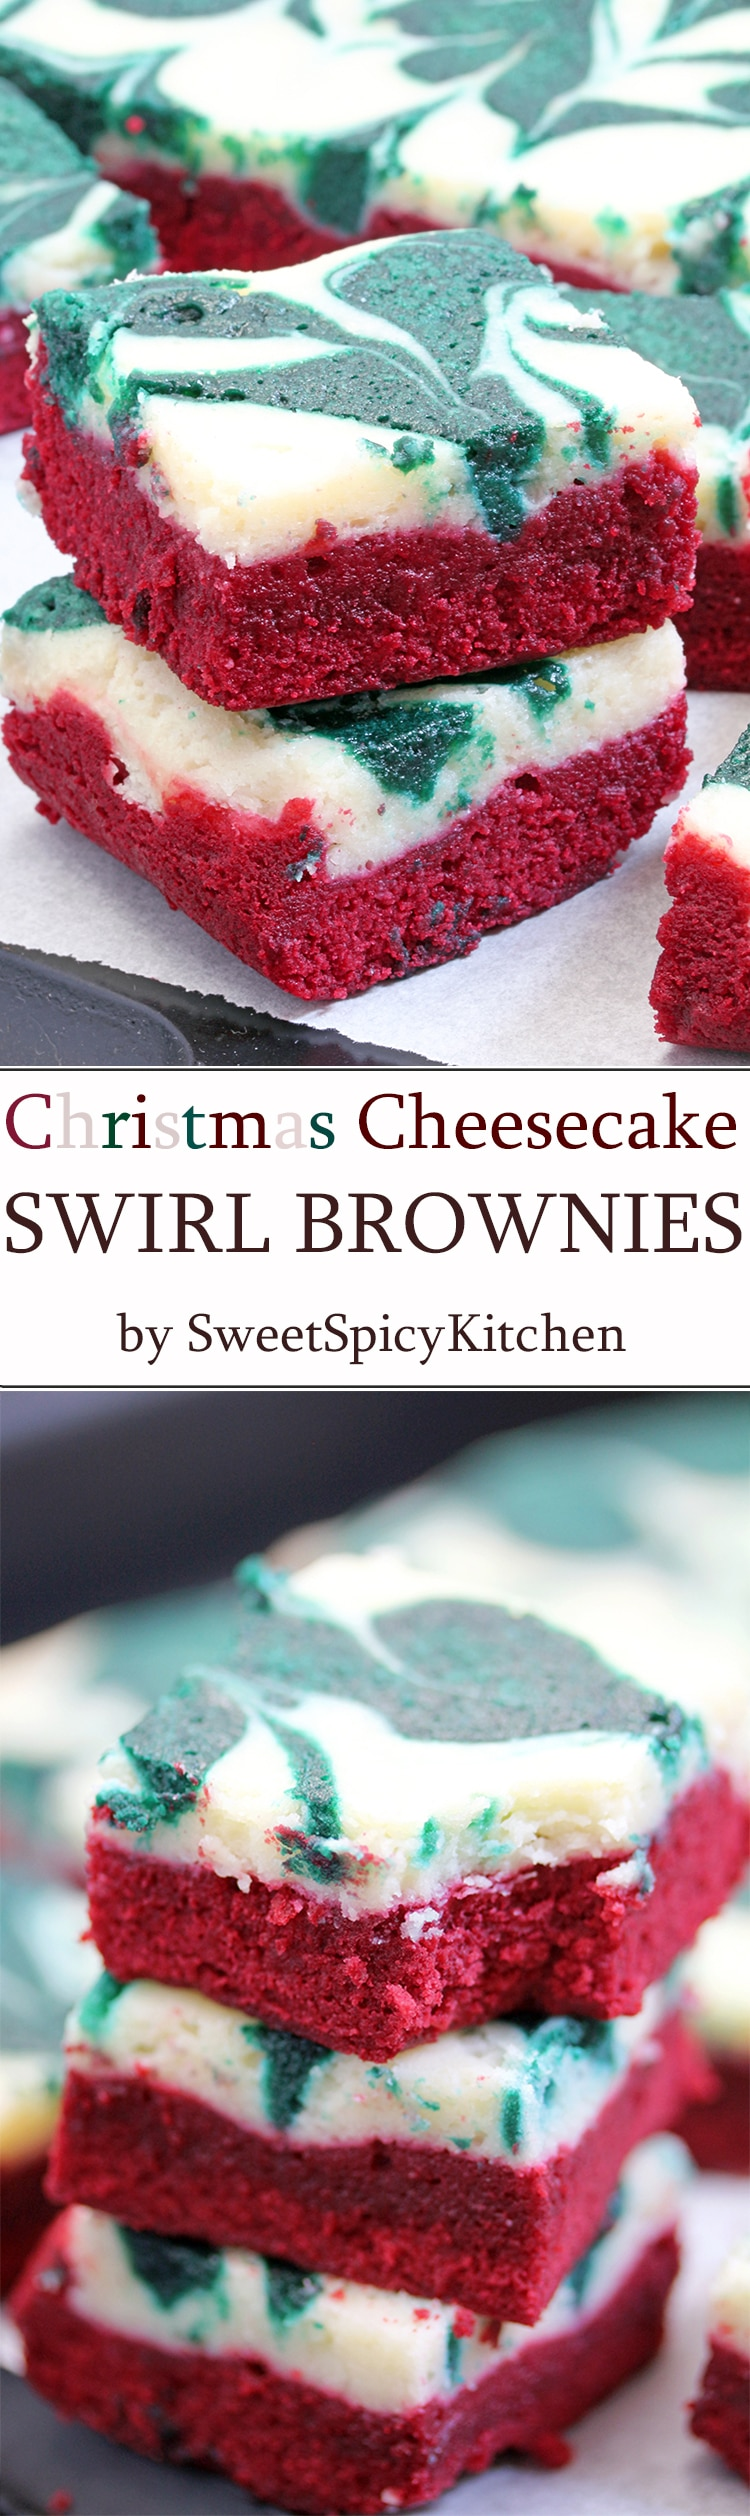 Christmas Cheesecake Swirl Brownies are quick and easy, super tasty brownies with a red velvet brownie layer, a cheesecake layer and swirl with green velvet brownies. Christmas colors…